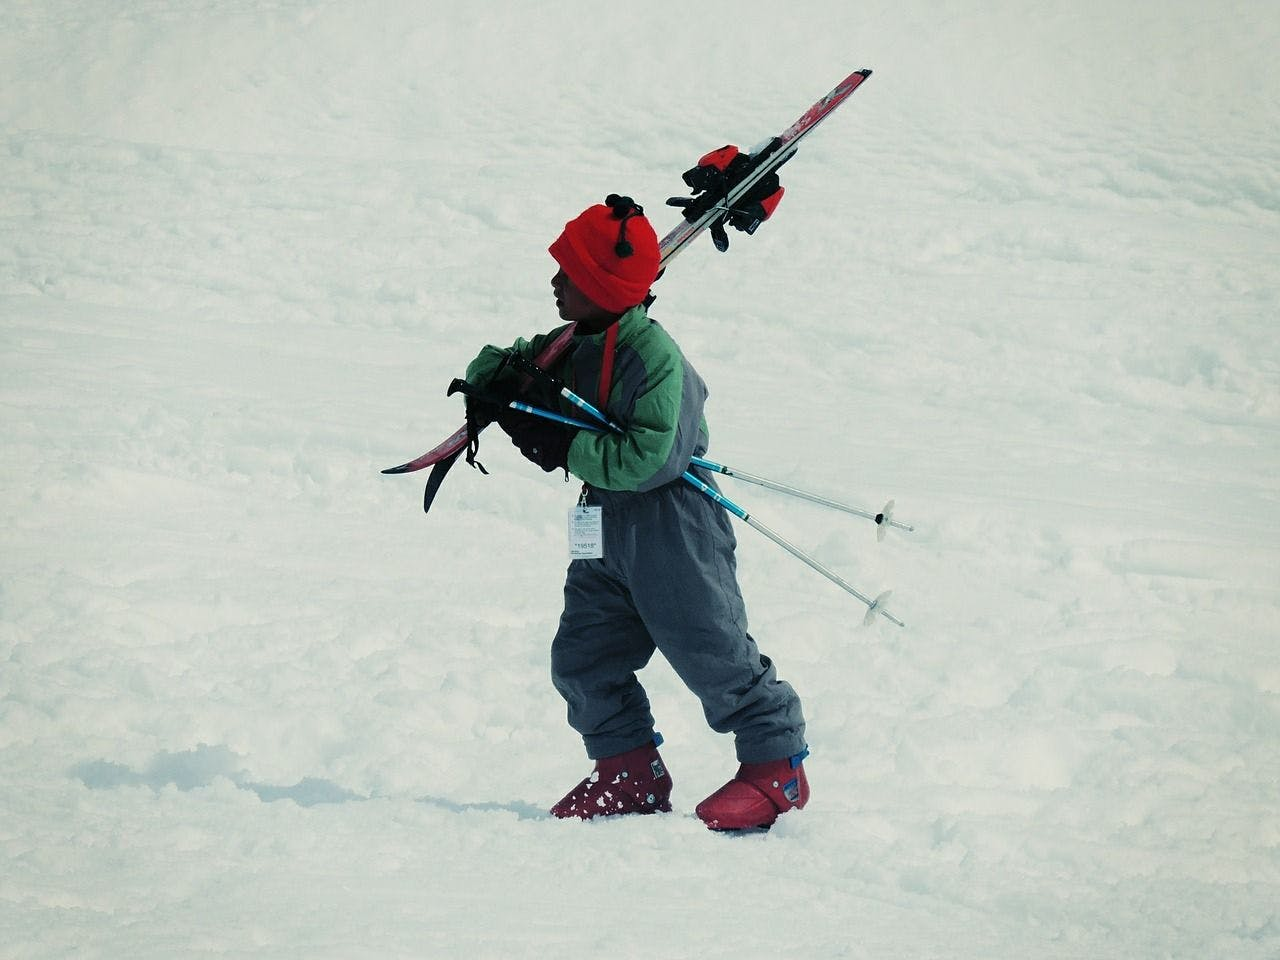 A child walks through the snow with skis.